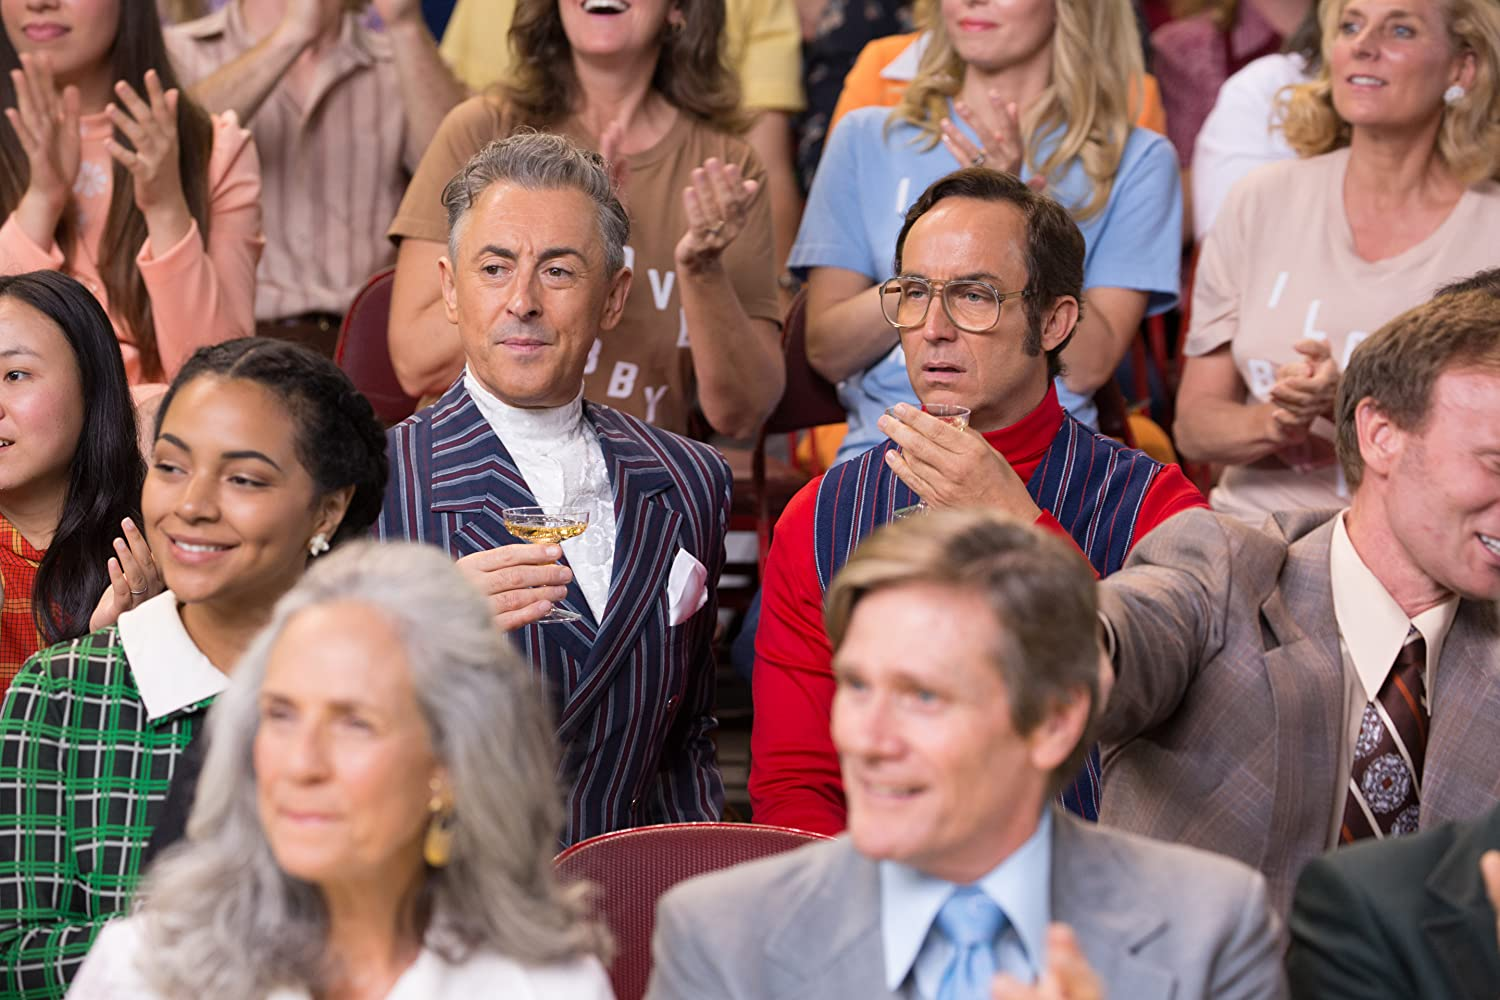 Alan Cumming and Wallace Langham in Battle of the Sexes (2017)